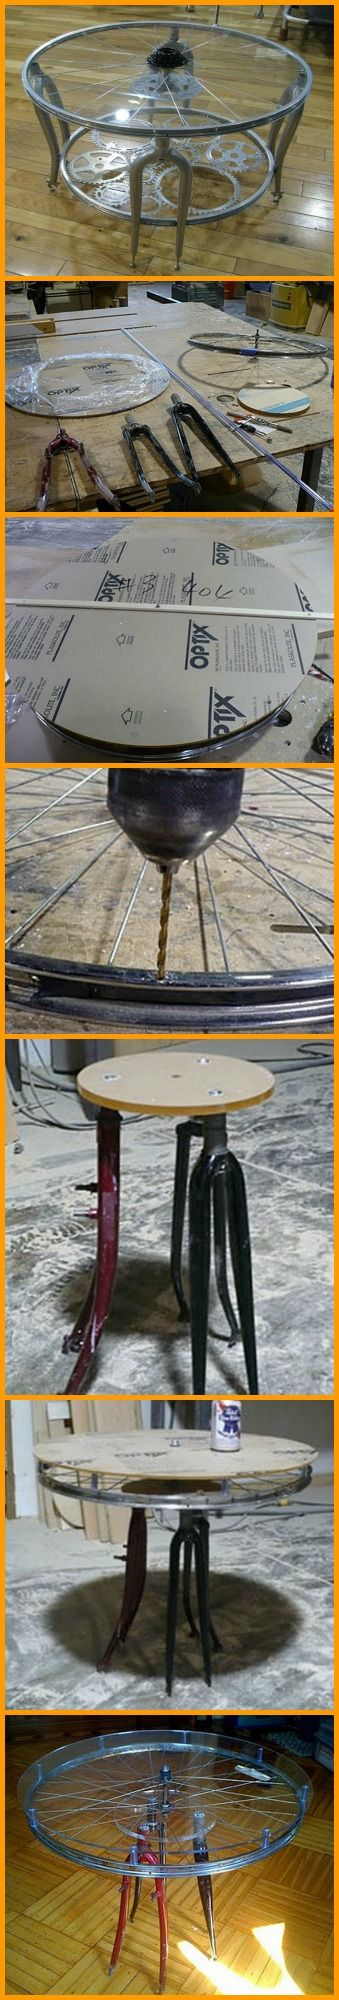 Recycling + Creativity = A unique table. http://theownerbuildernetwork.co/25qx